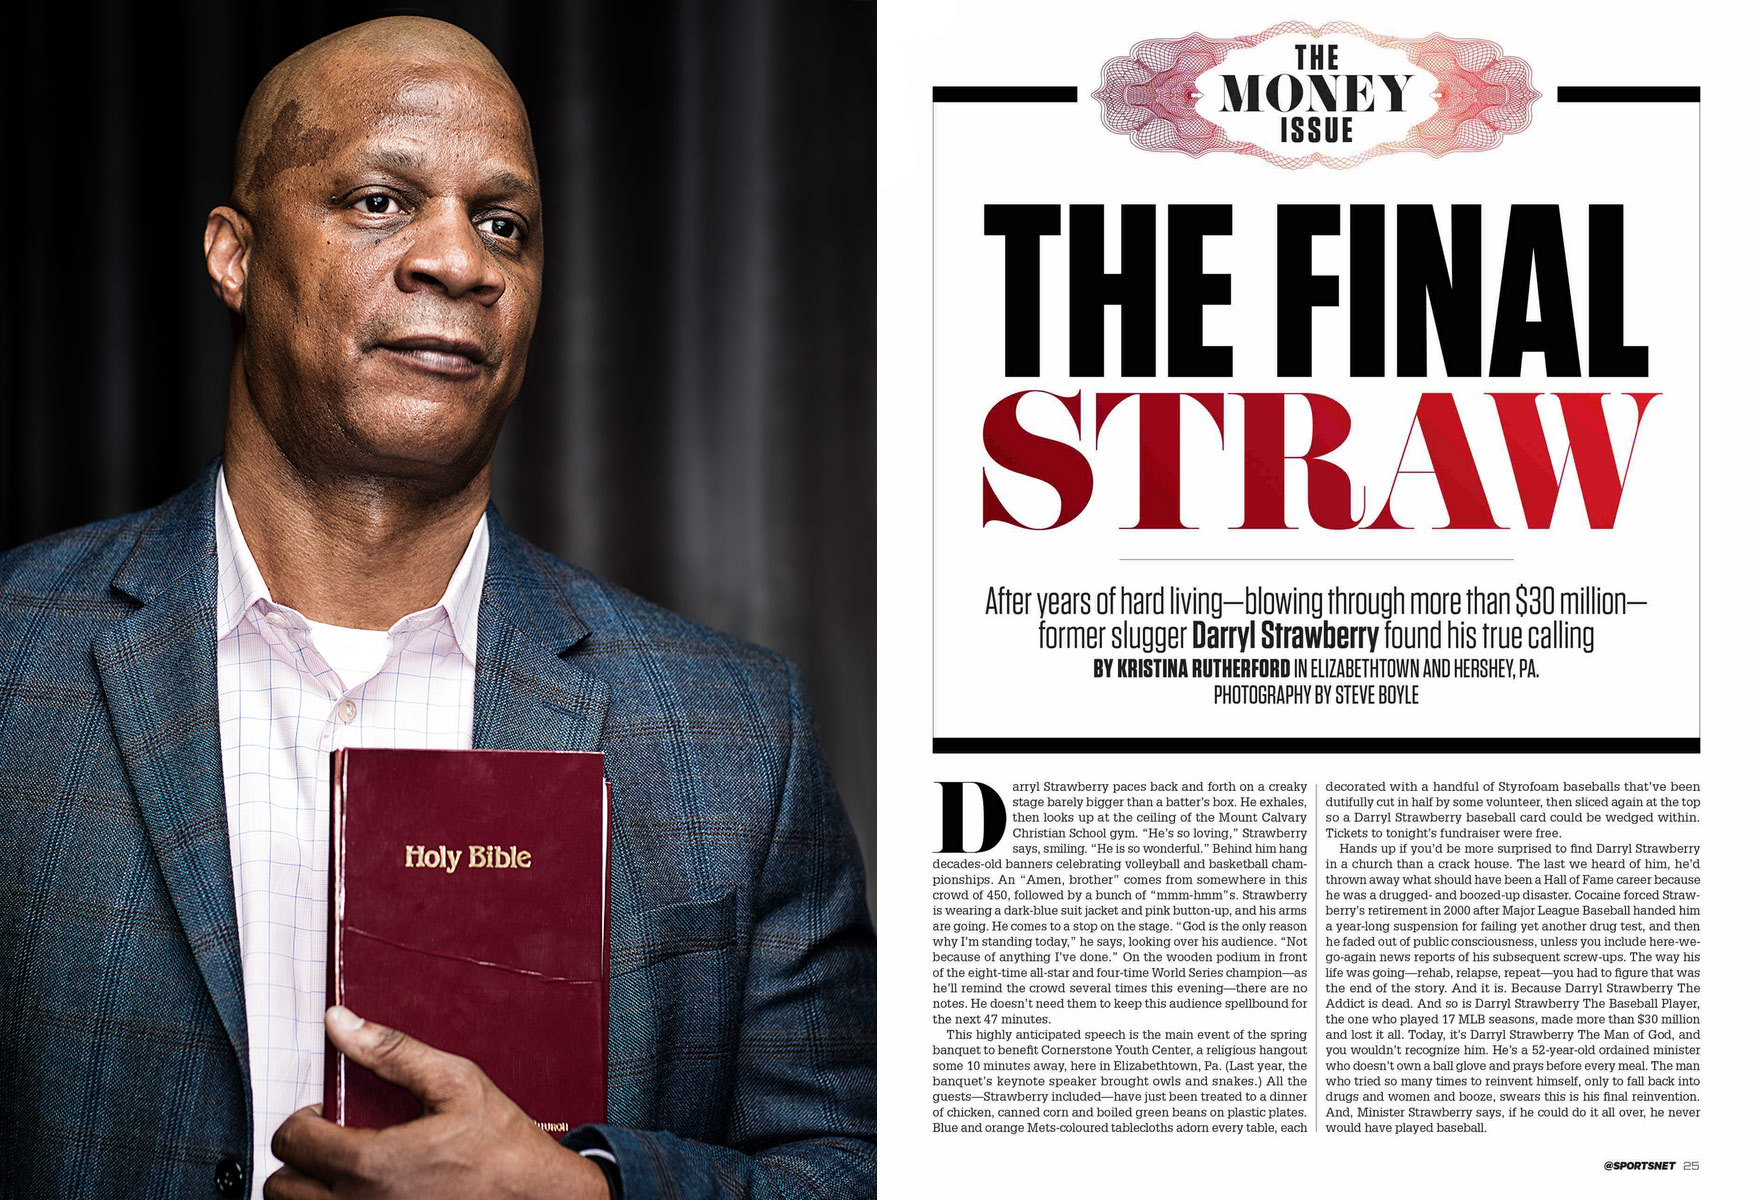 Philadelphia Photographer STEVE BOYLE - Darryl Strawberry